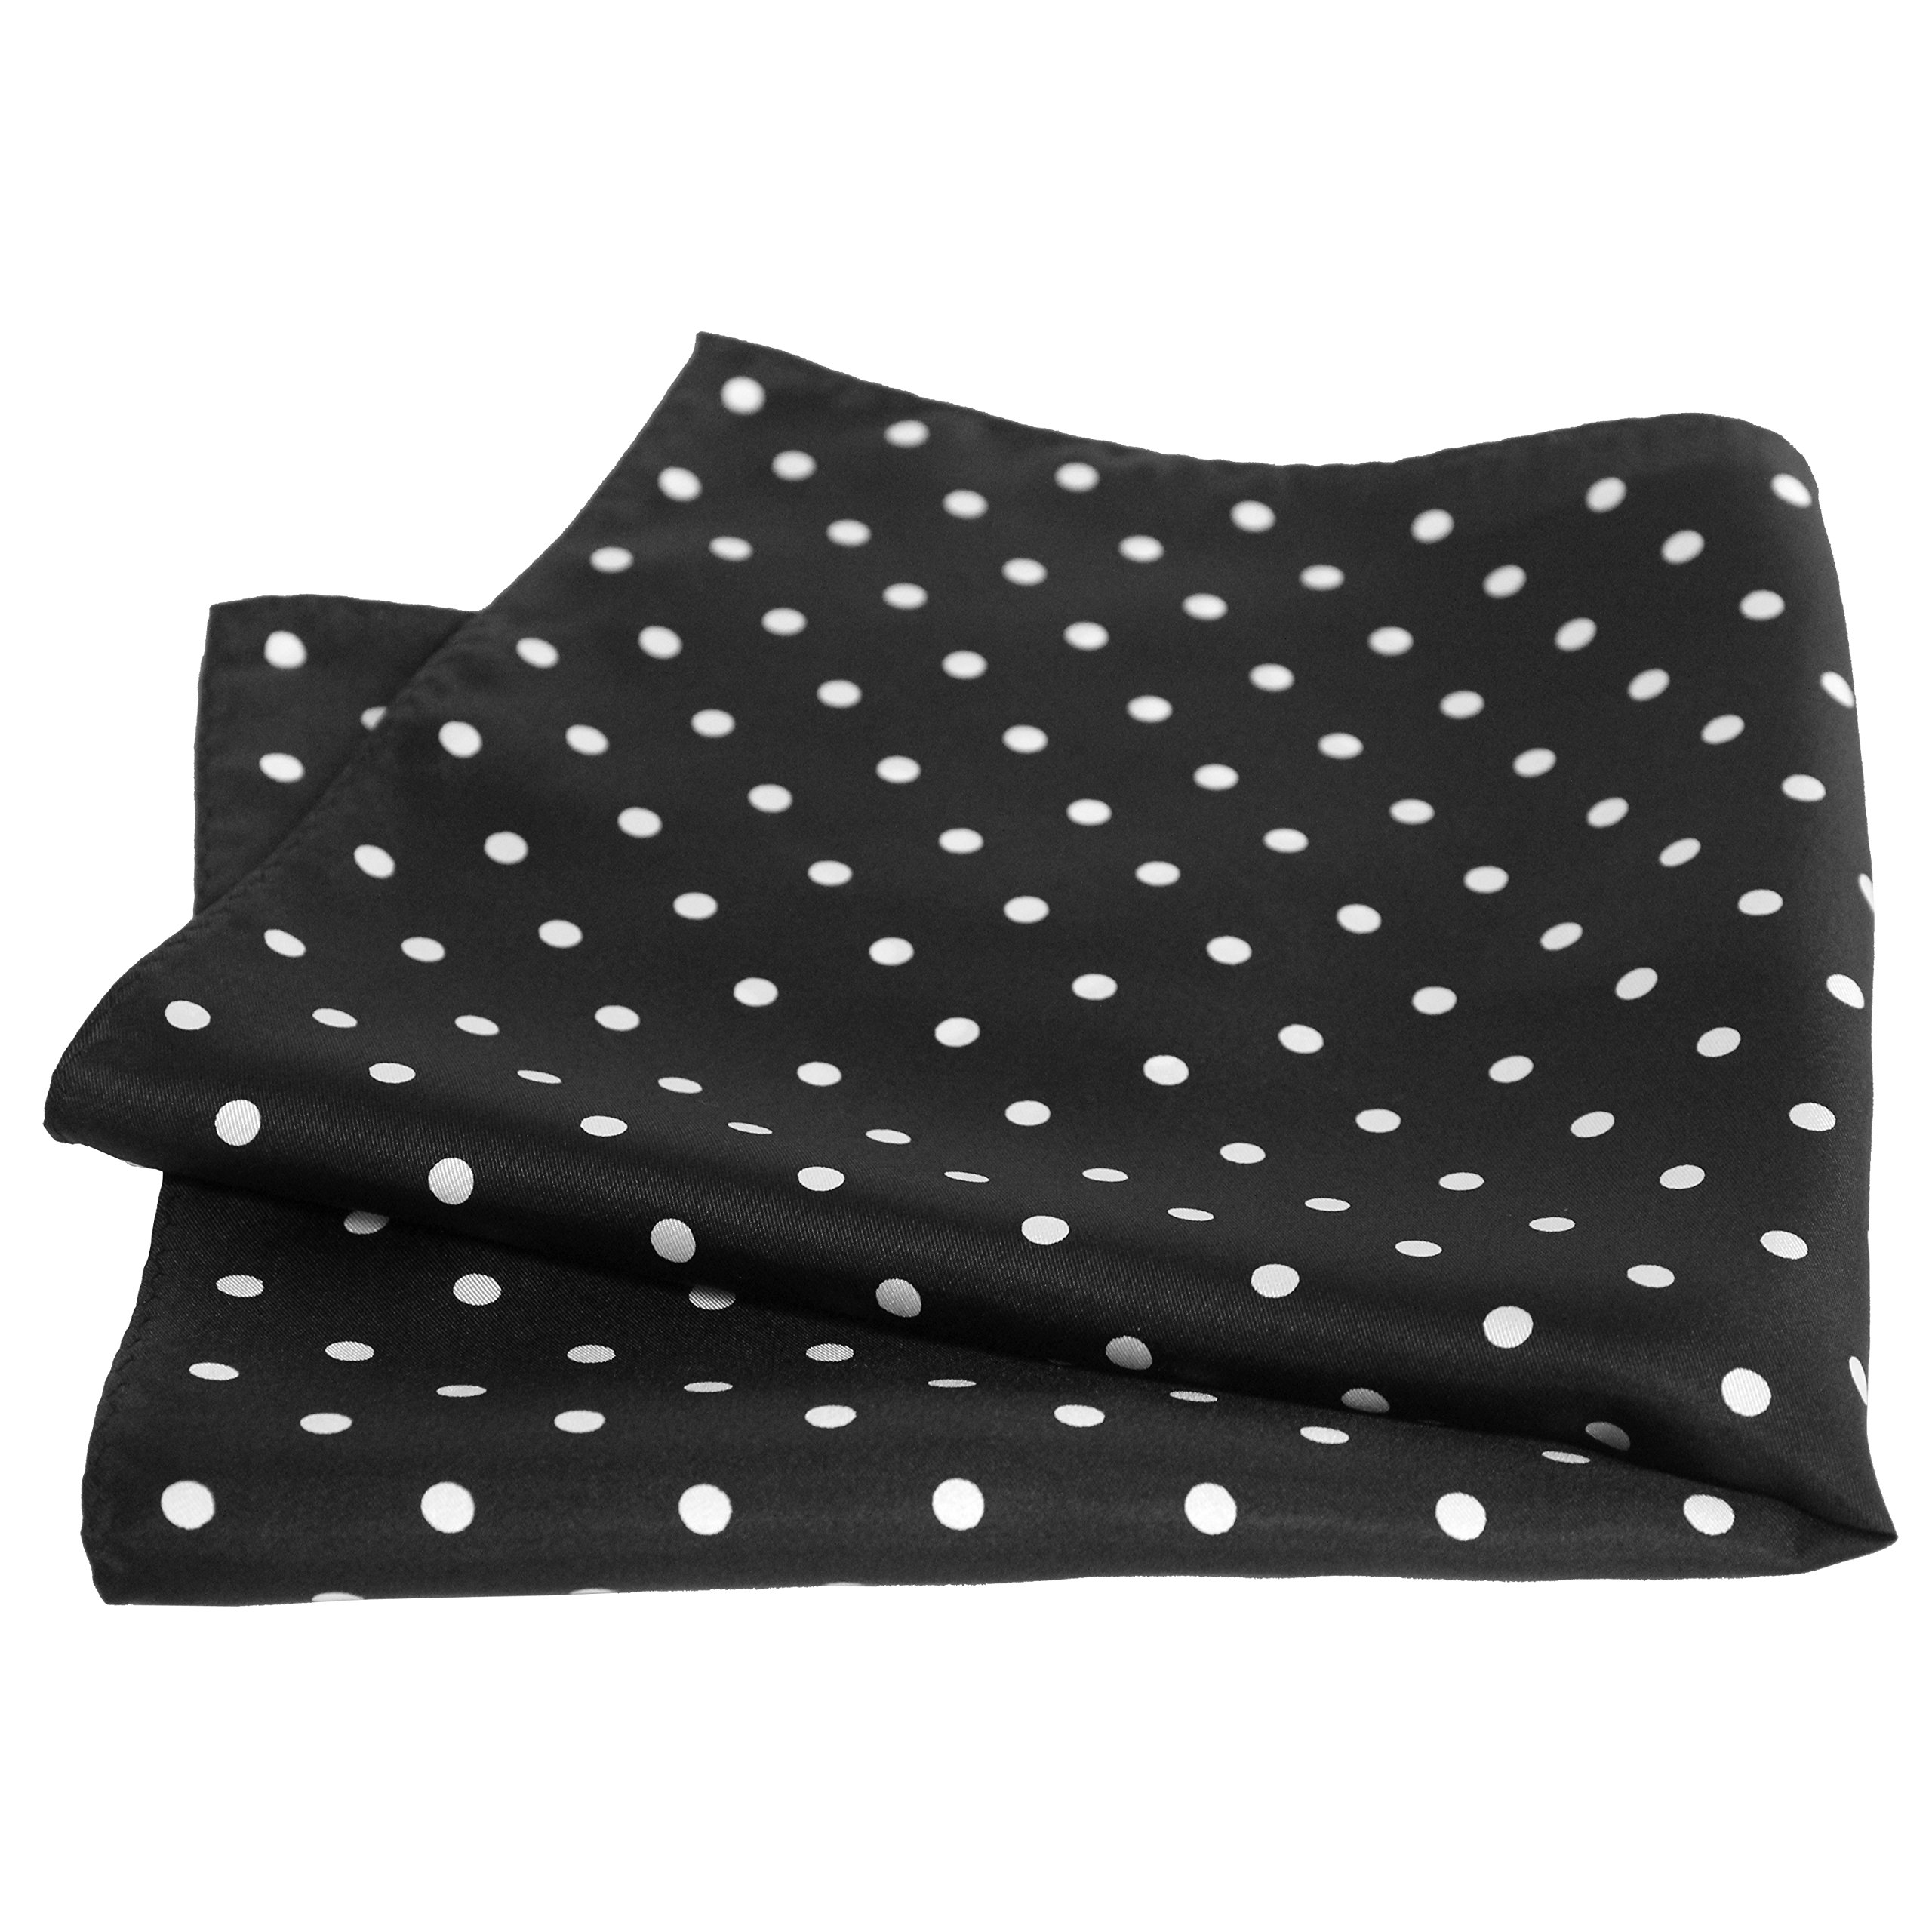 Black Silk Polka Dot Pocket Square - 17'' Handkerchief - 12mm Silk Twill by Royal Silk